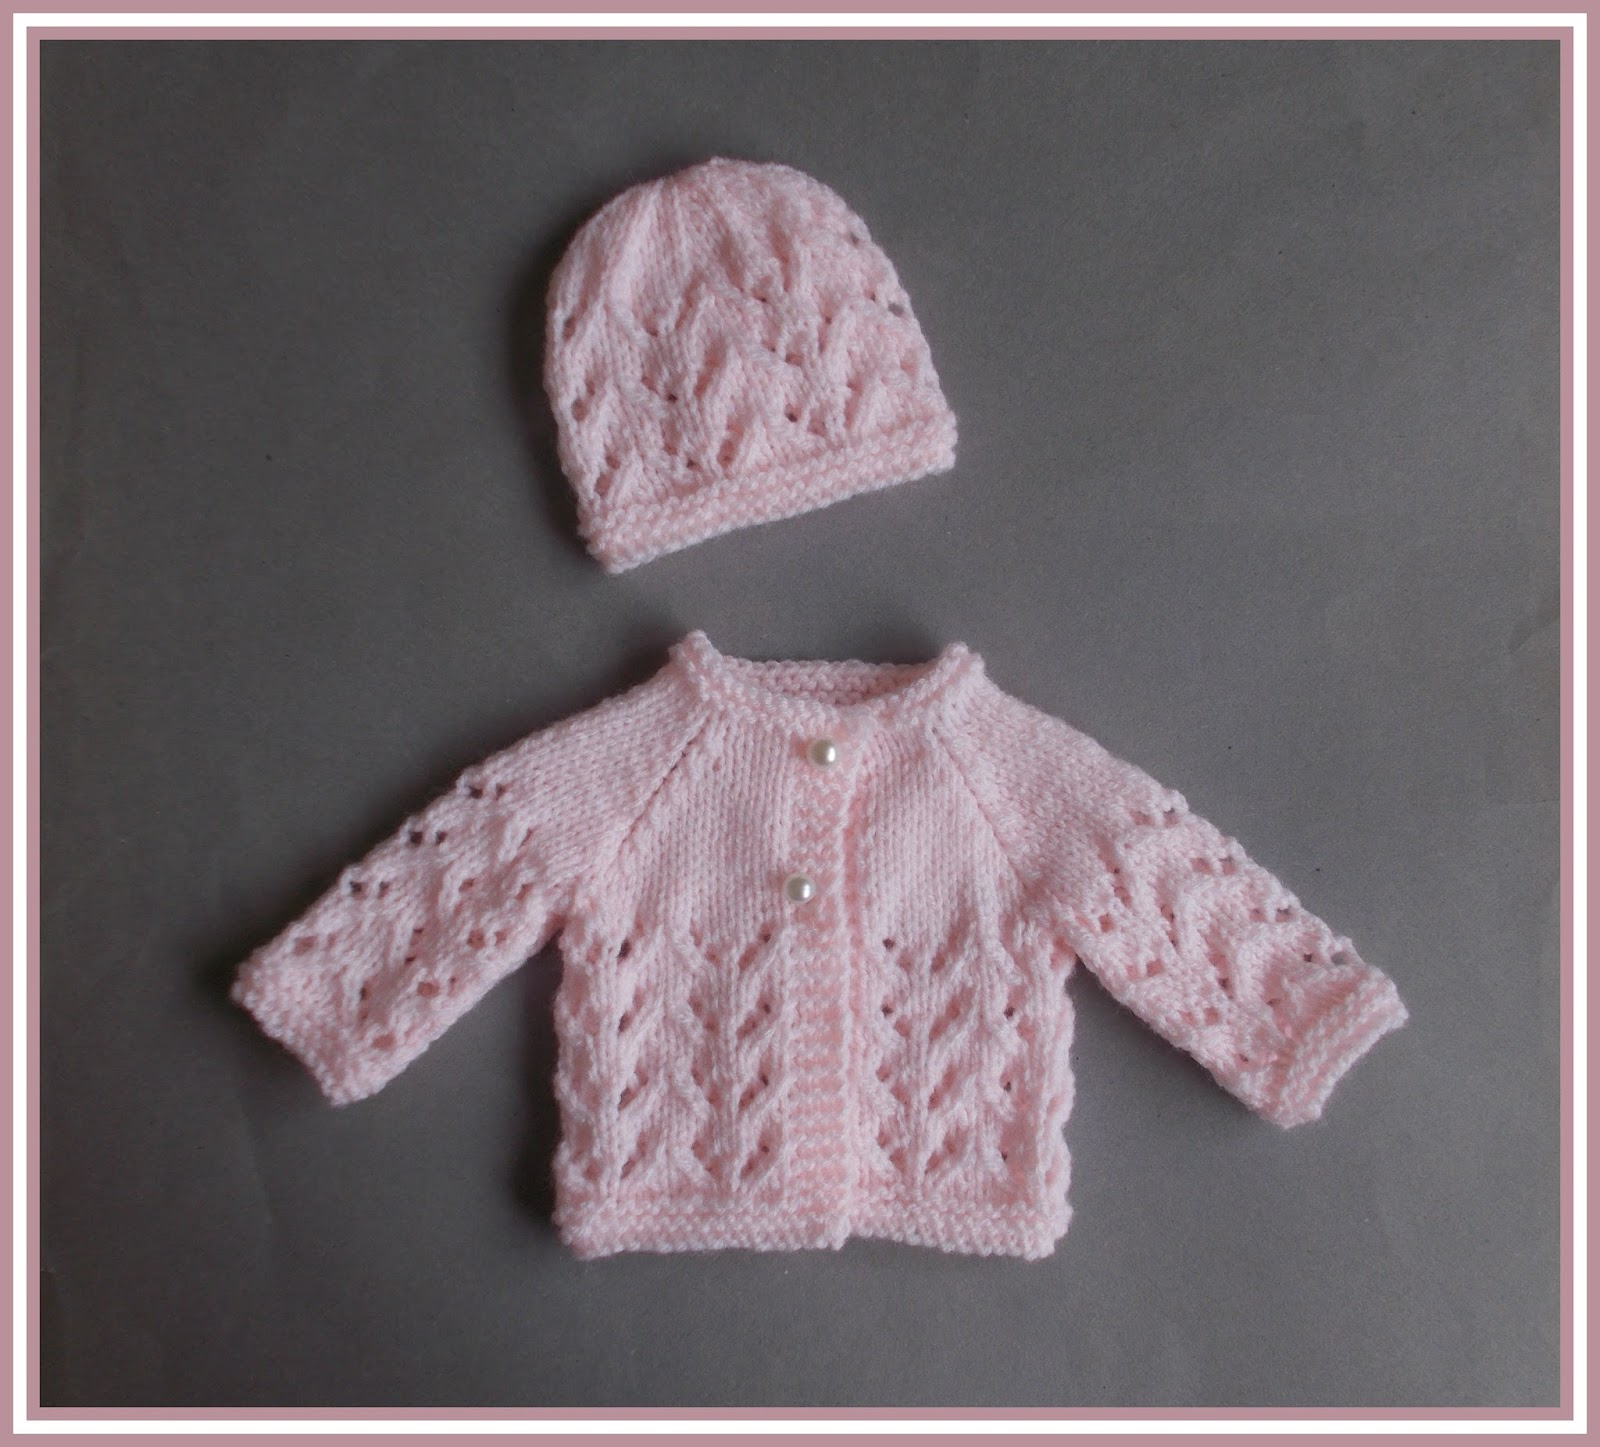 Free Knitting Patterns For Newborn Hats Ba Hats Page 2 Of 3 Craft Blog Crochet Patterns